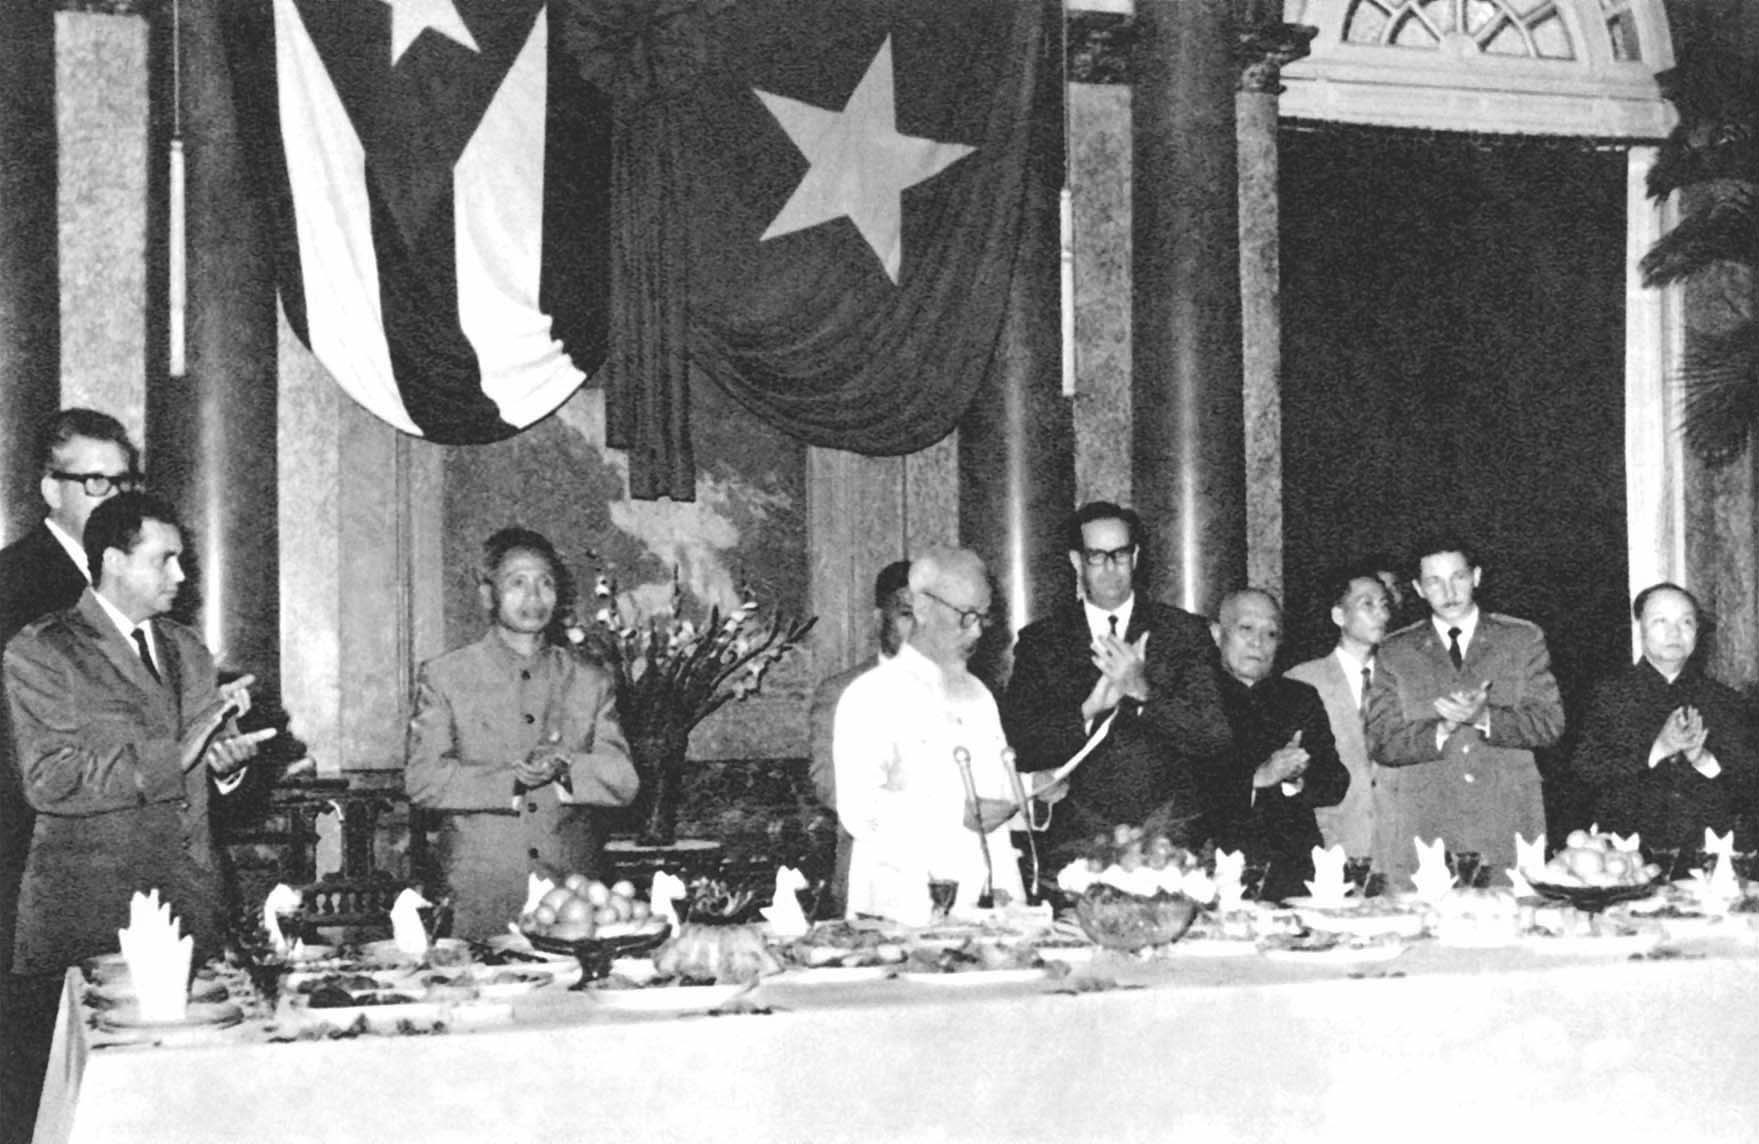 President Ho Chi Minh delivering a speech to welcome the government delegation of the Republic of Cuba headed by President Dorticot Corado visiting Vietnam (October 29th, 1966)